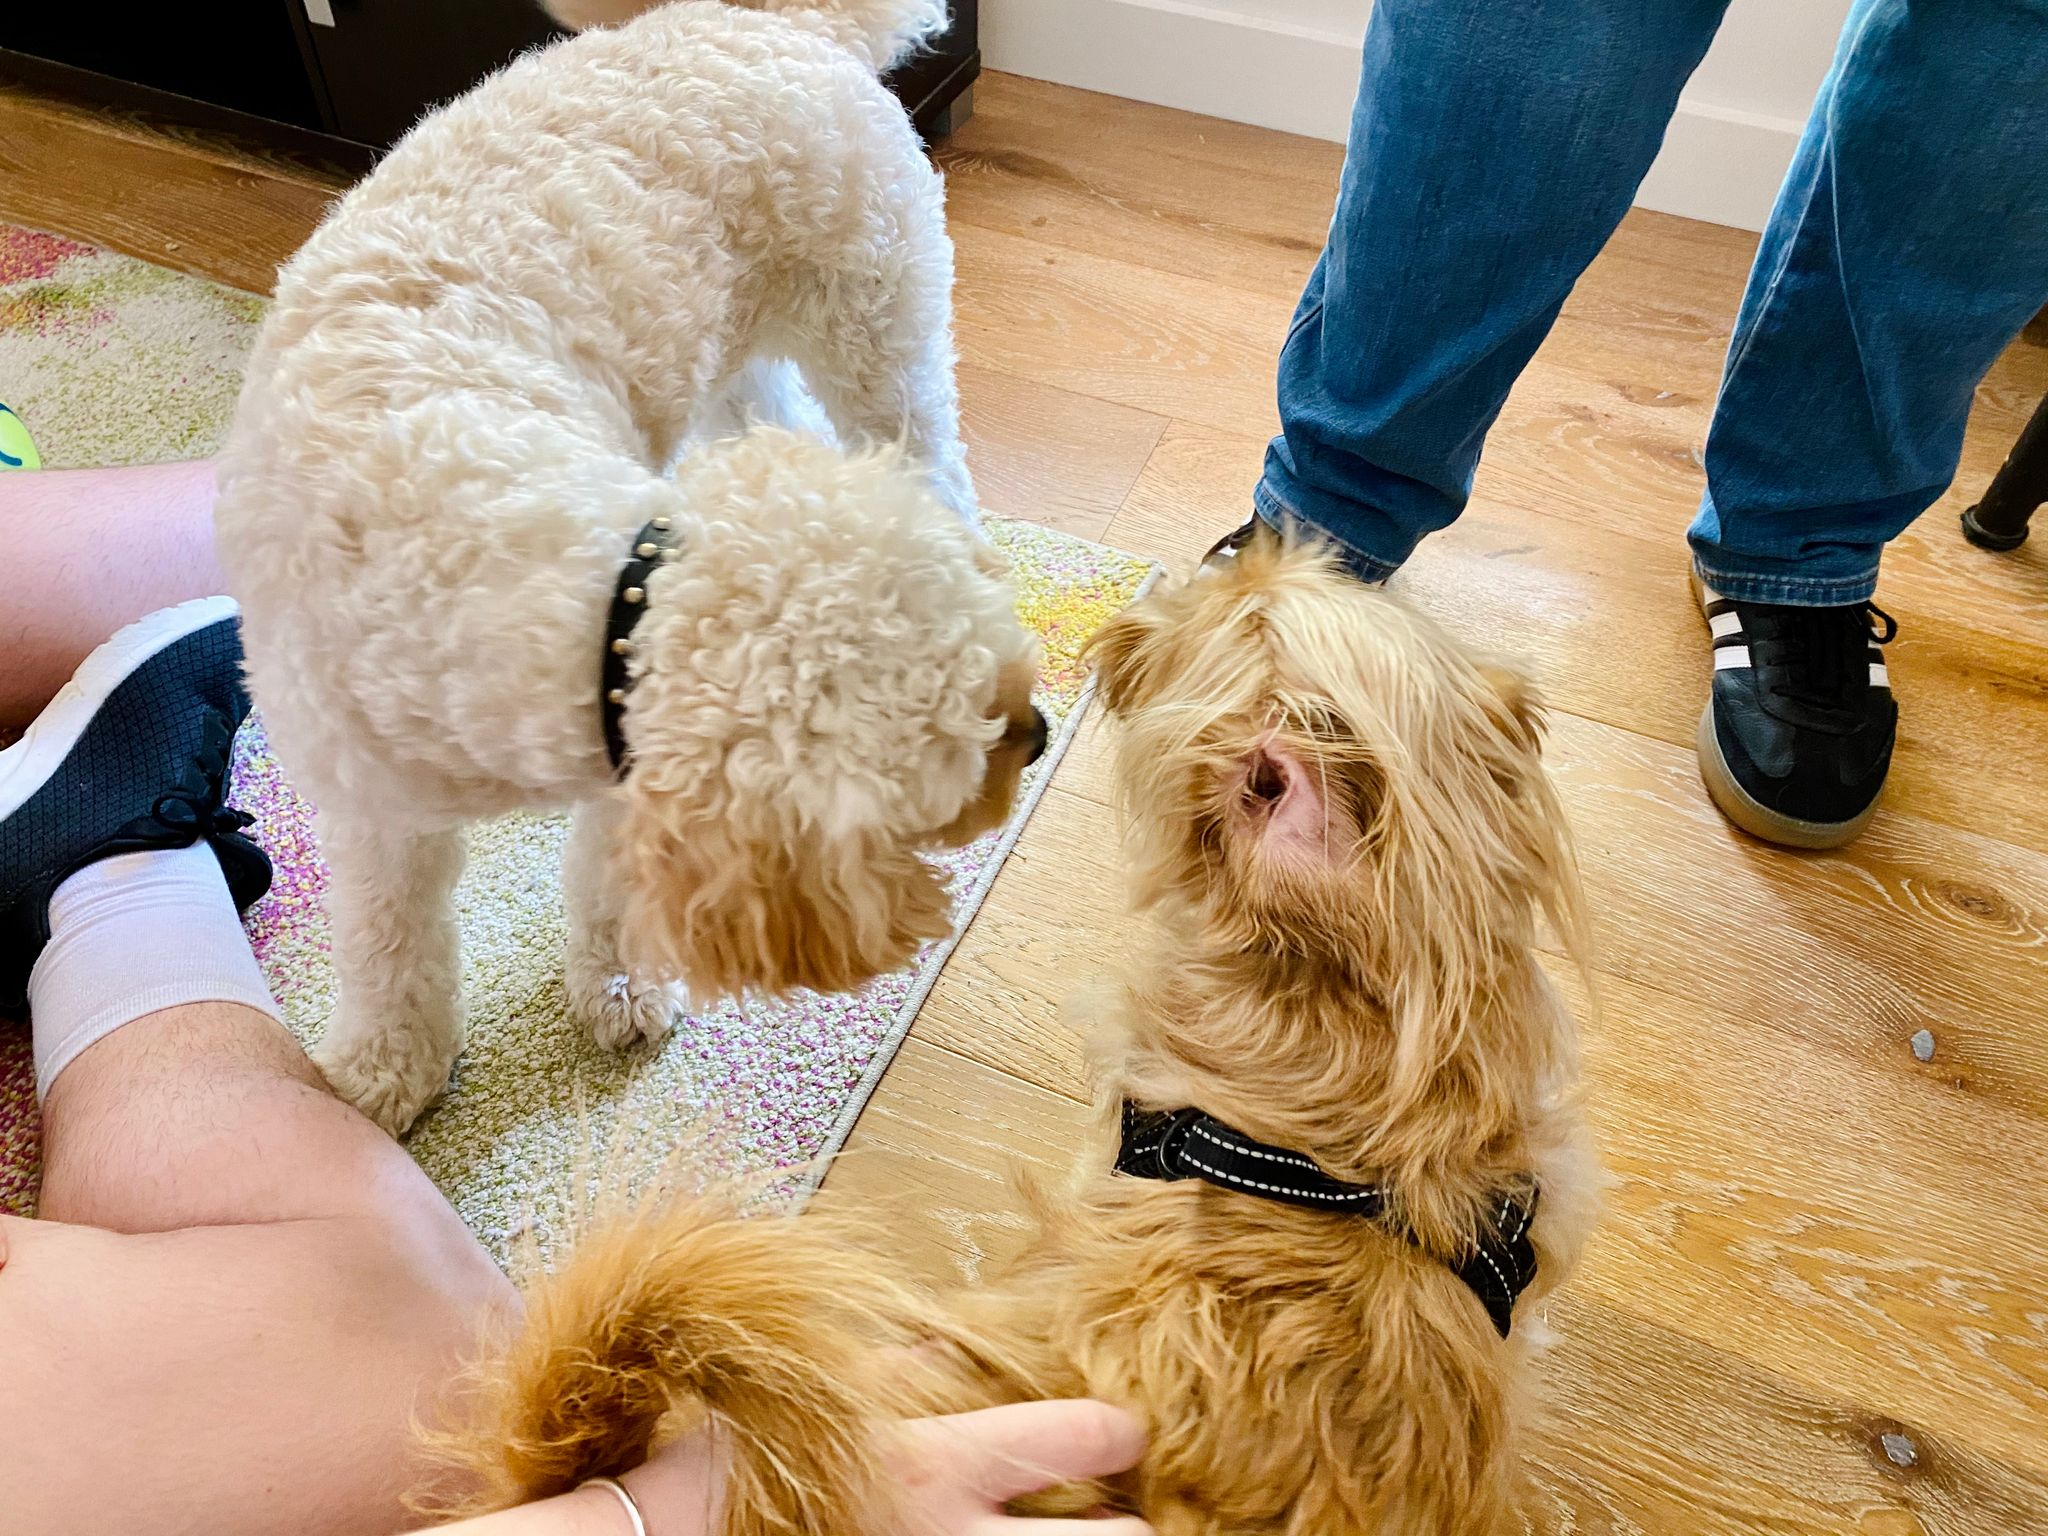 A photo of two dogs sniffing each others' faces, one is a small scruffy blonde dog and the other is a slightly larger white cavoodle.